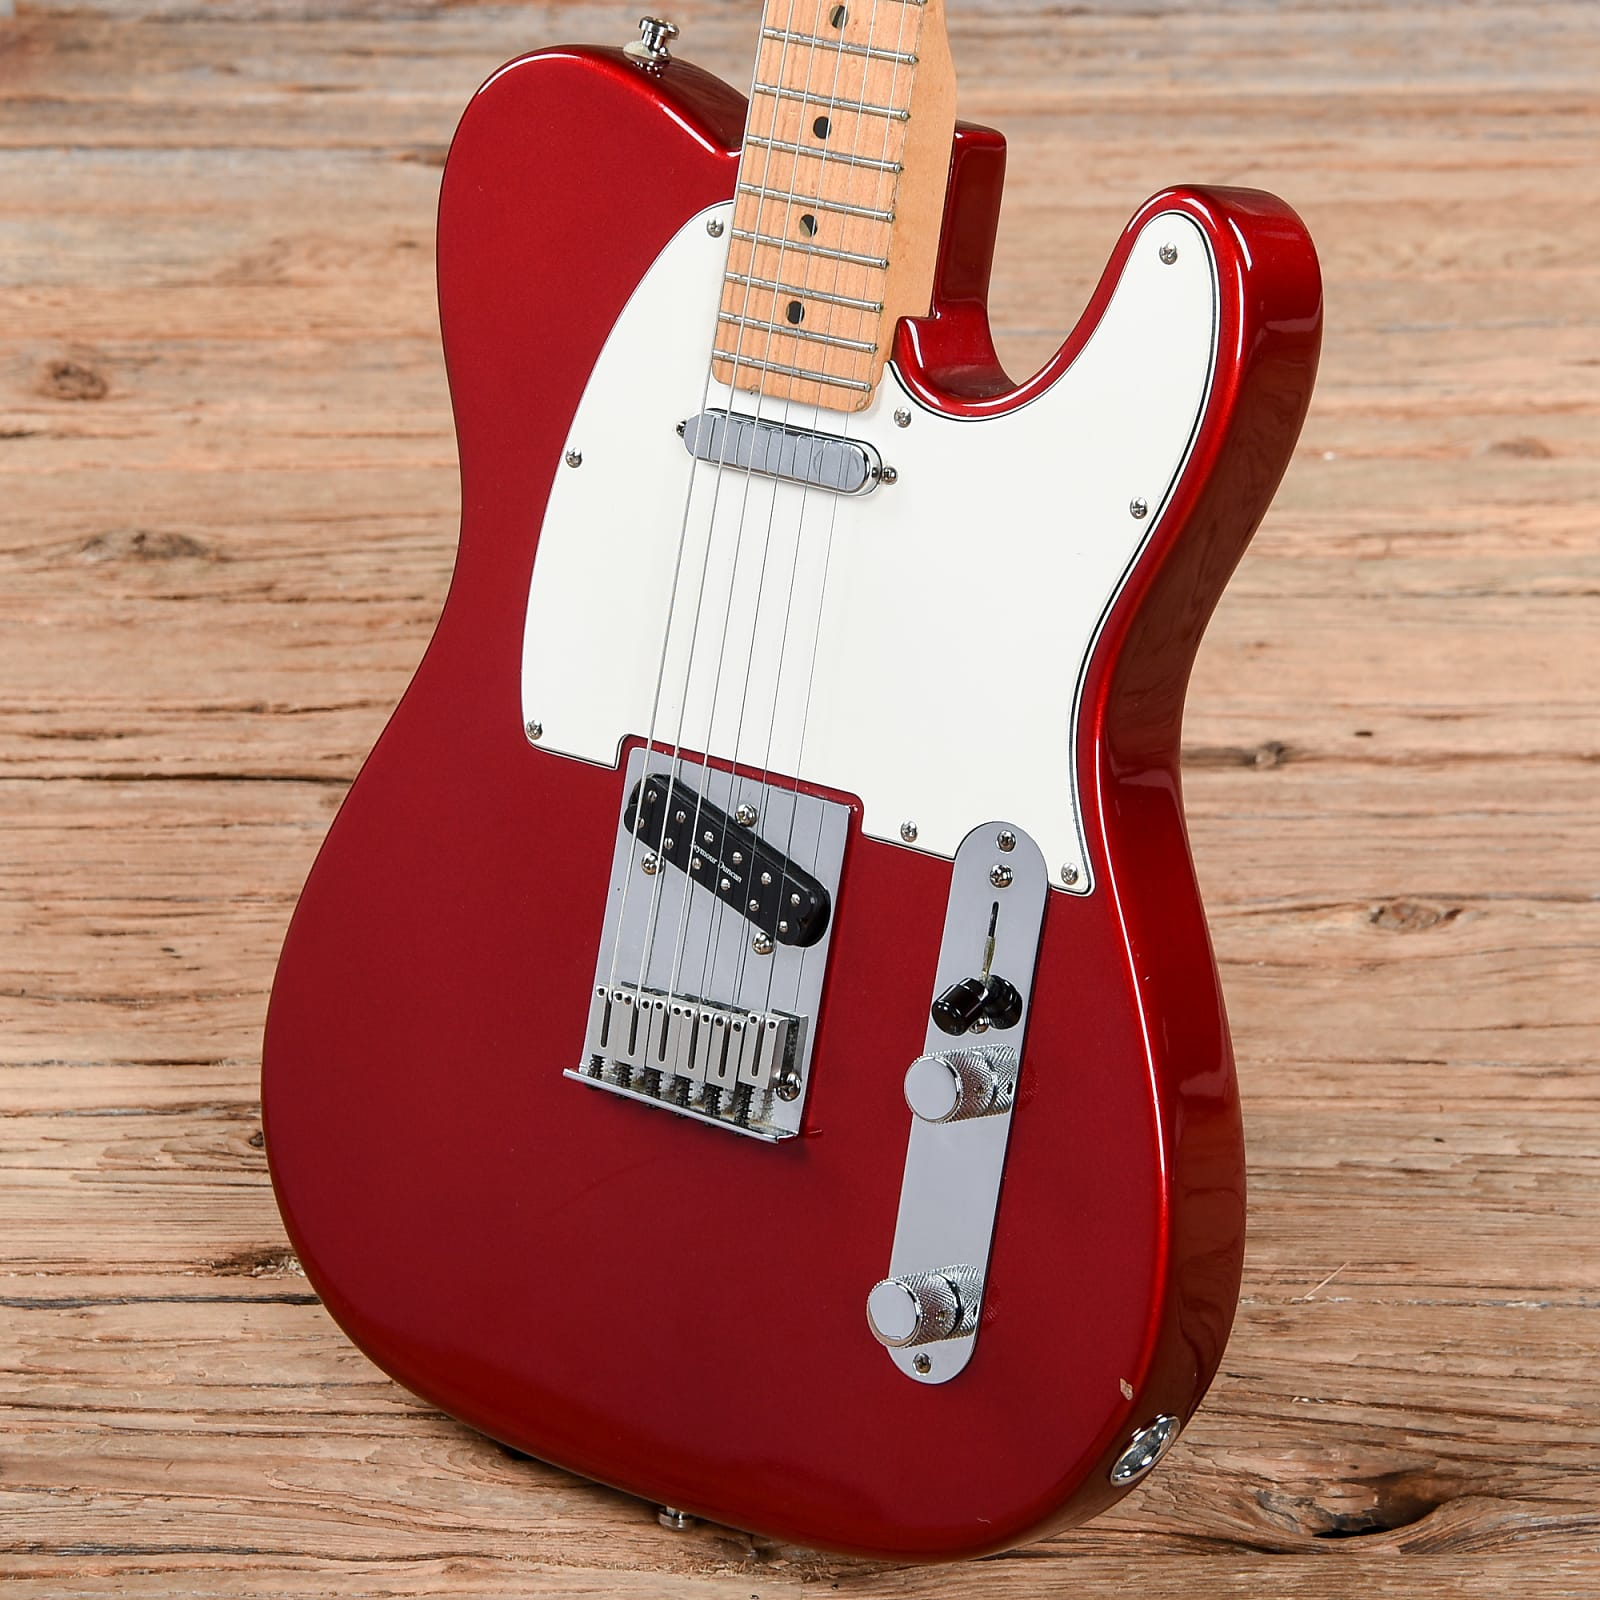 d5dc3be4eb26 Fender American Standard Telecaster Candy Apple Red 1997 (s701)